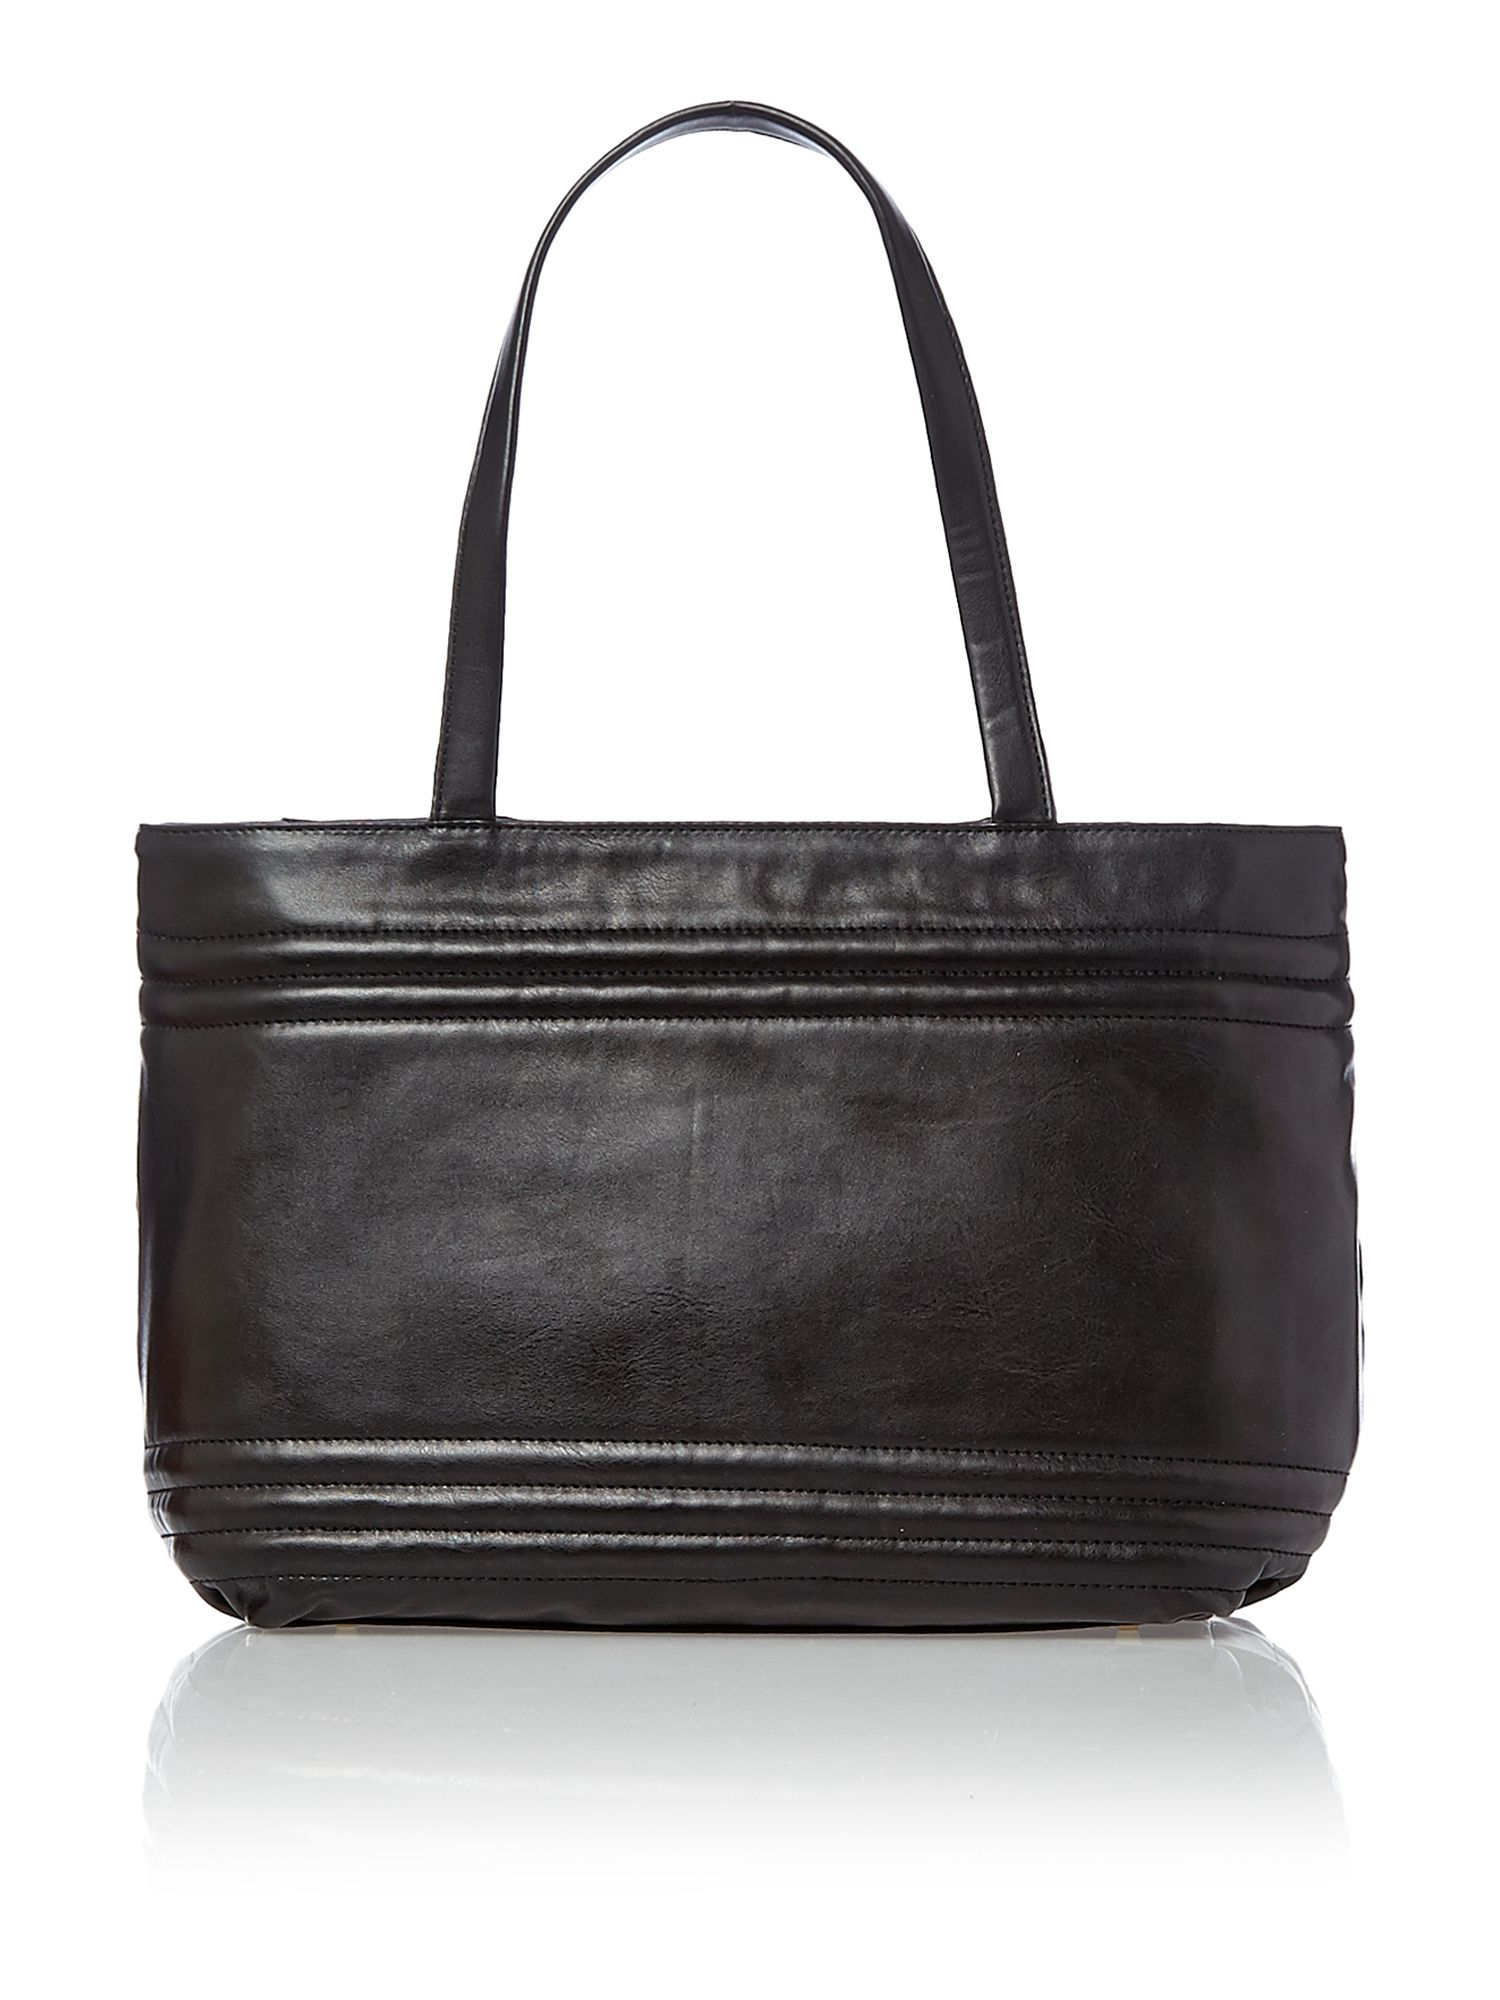 Modern goth black tote bag with detail